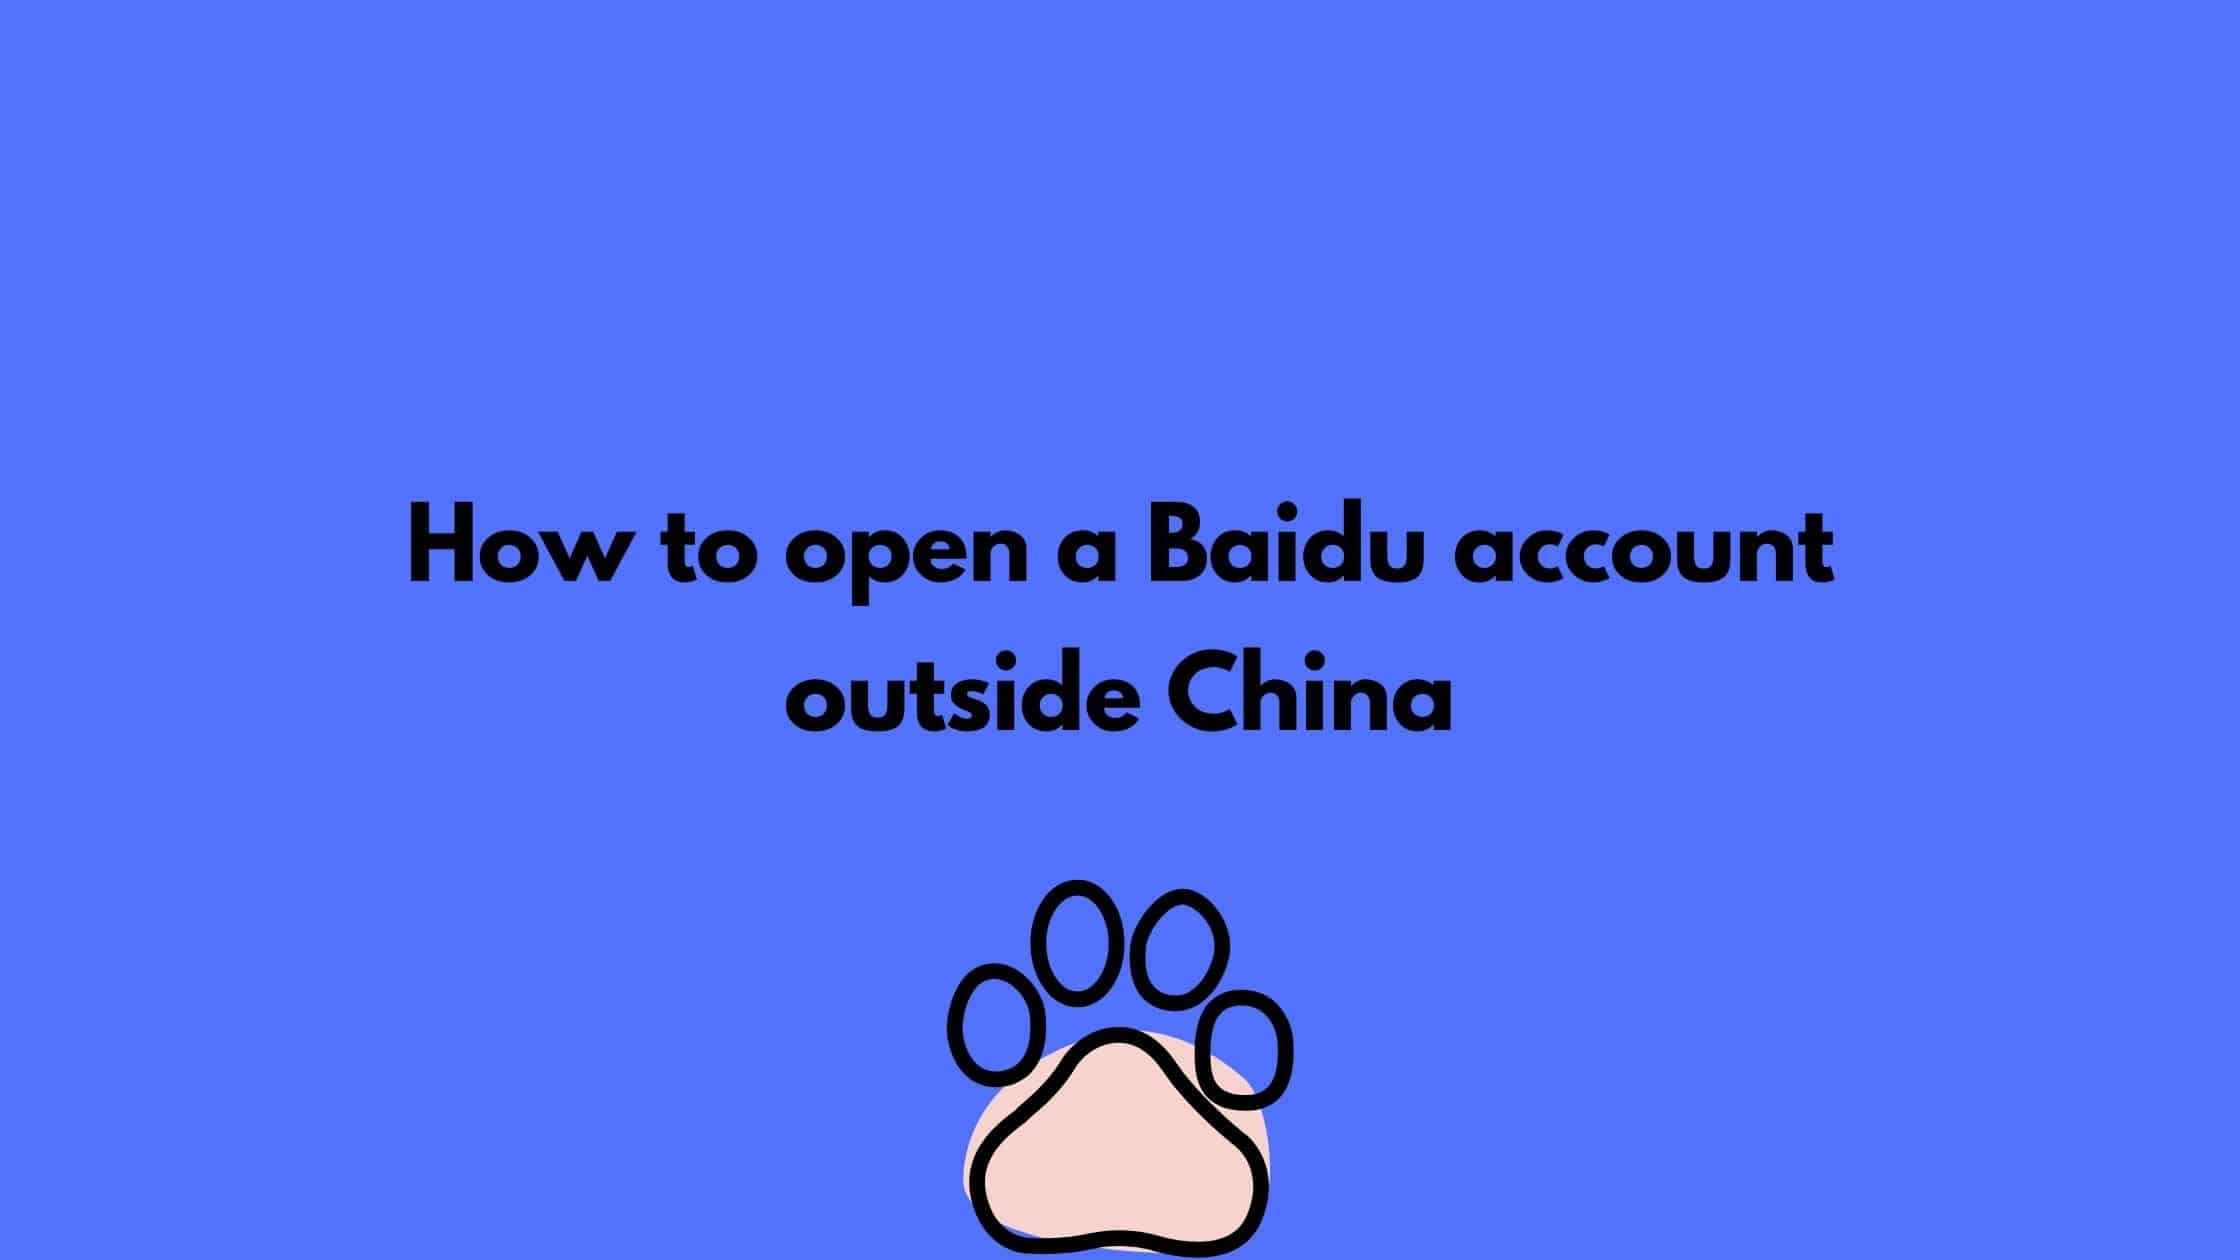 How to open a Baidu account outside China